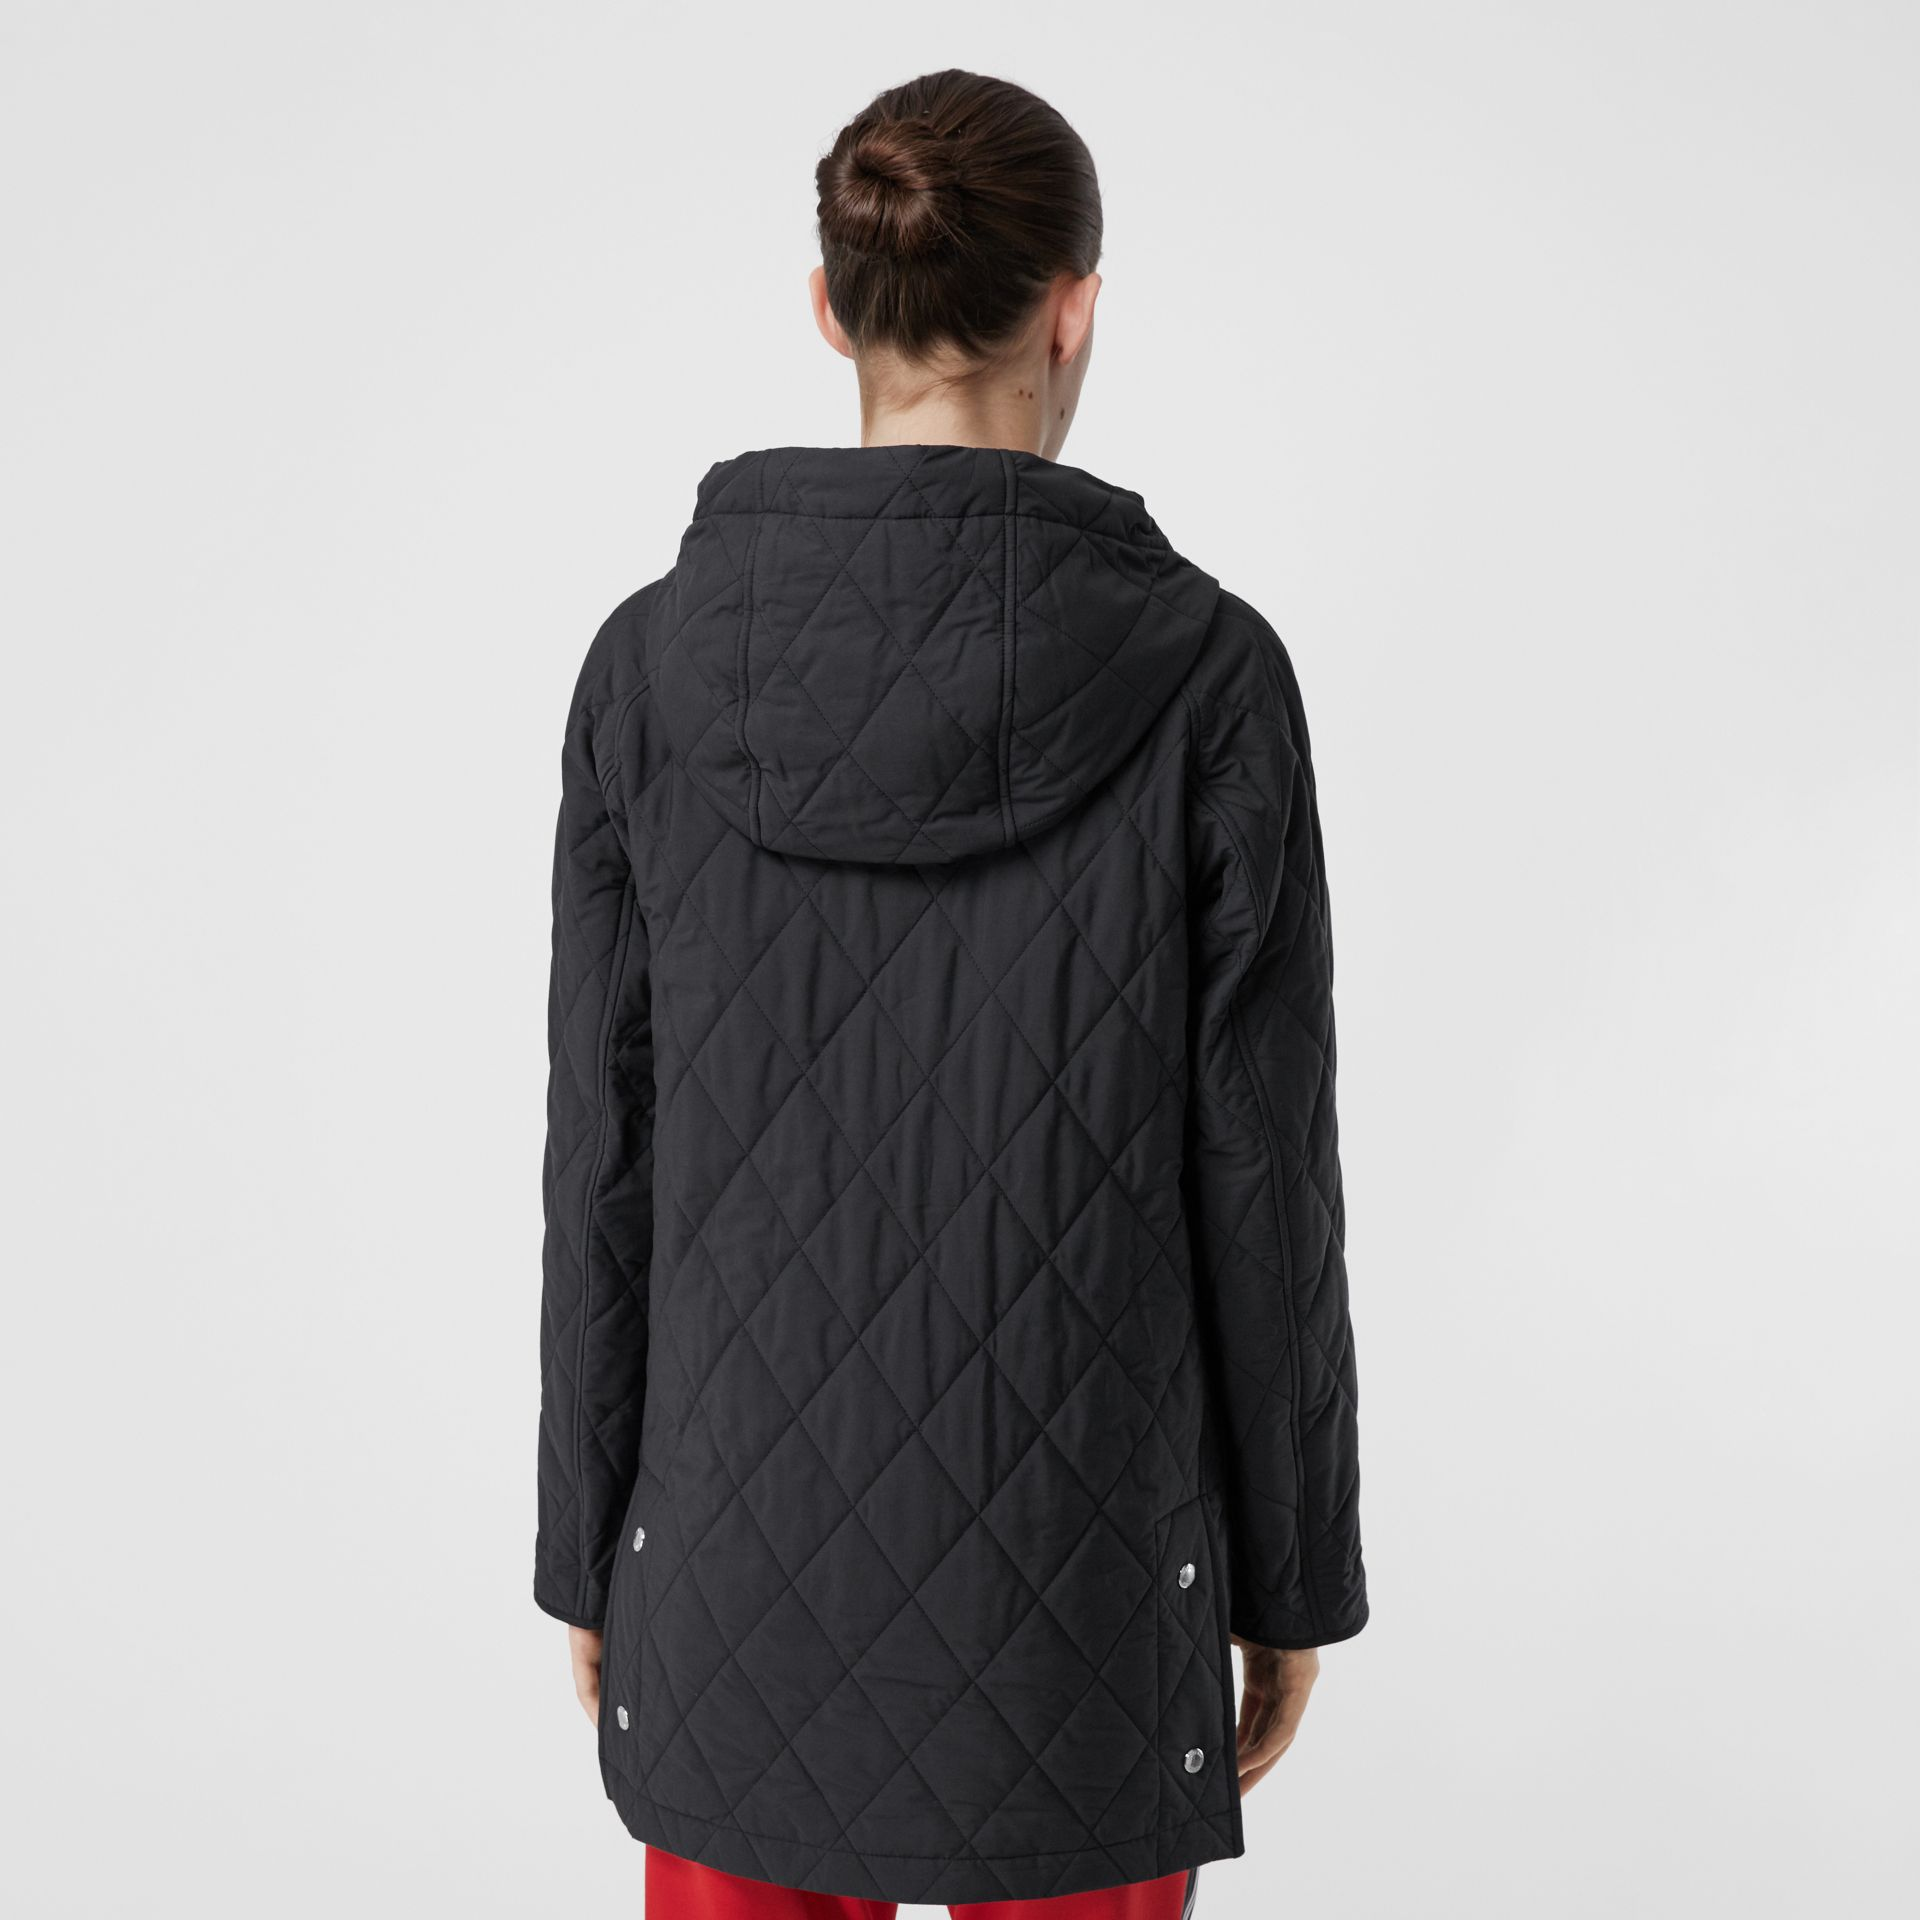 Diamond Quilted Cotton Blend Hooded Coat in Black - Women | Burberry - gallery image 2